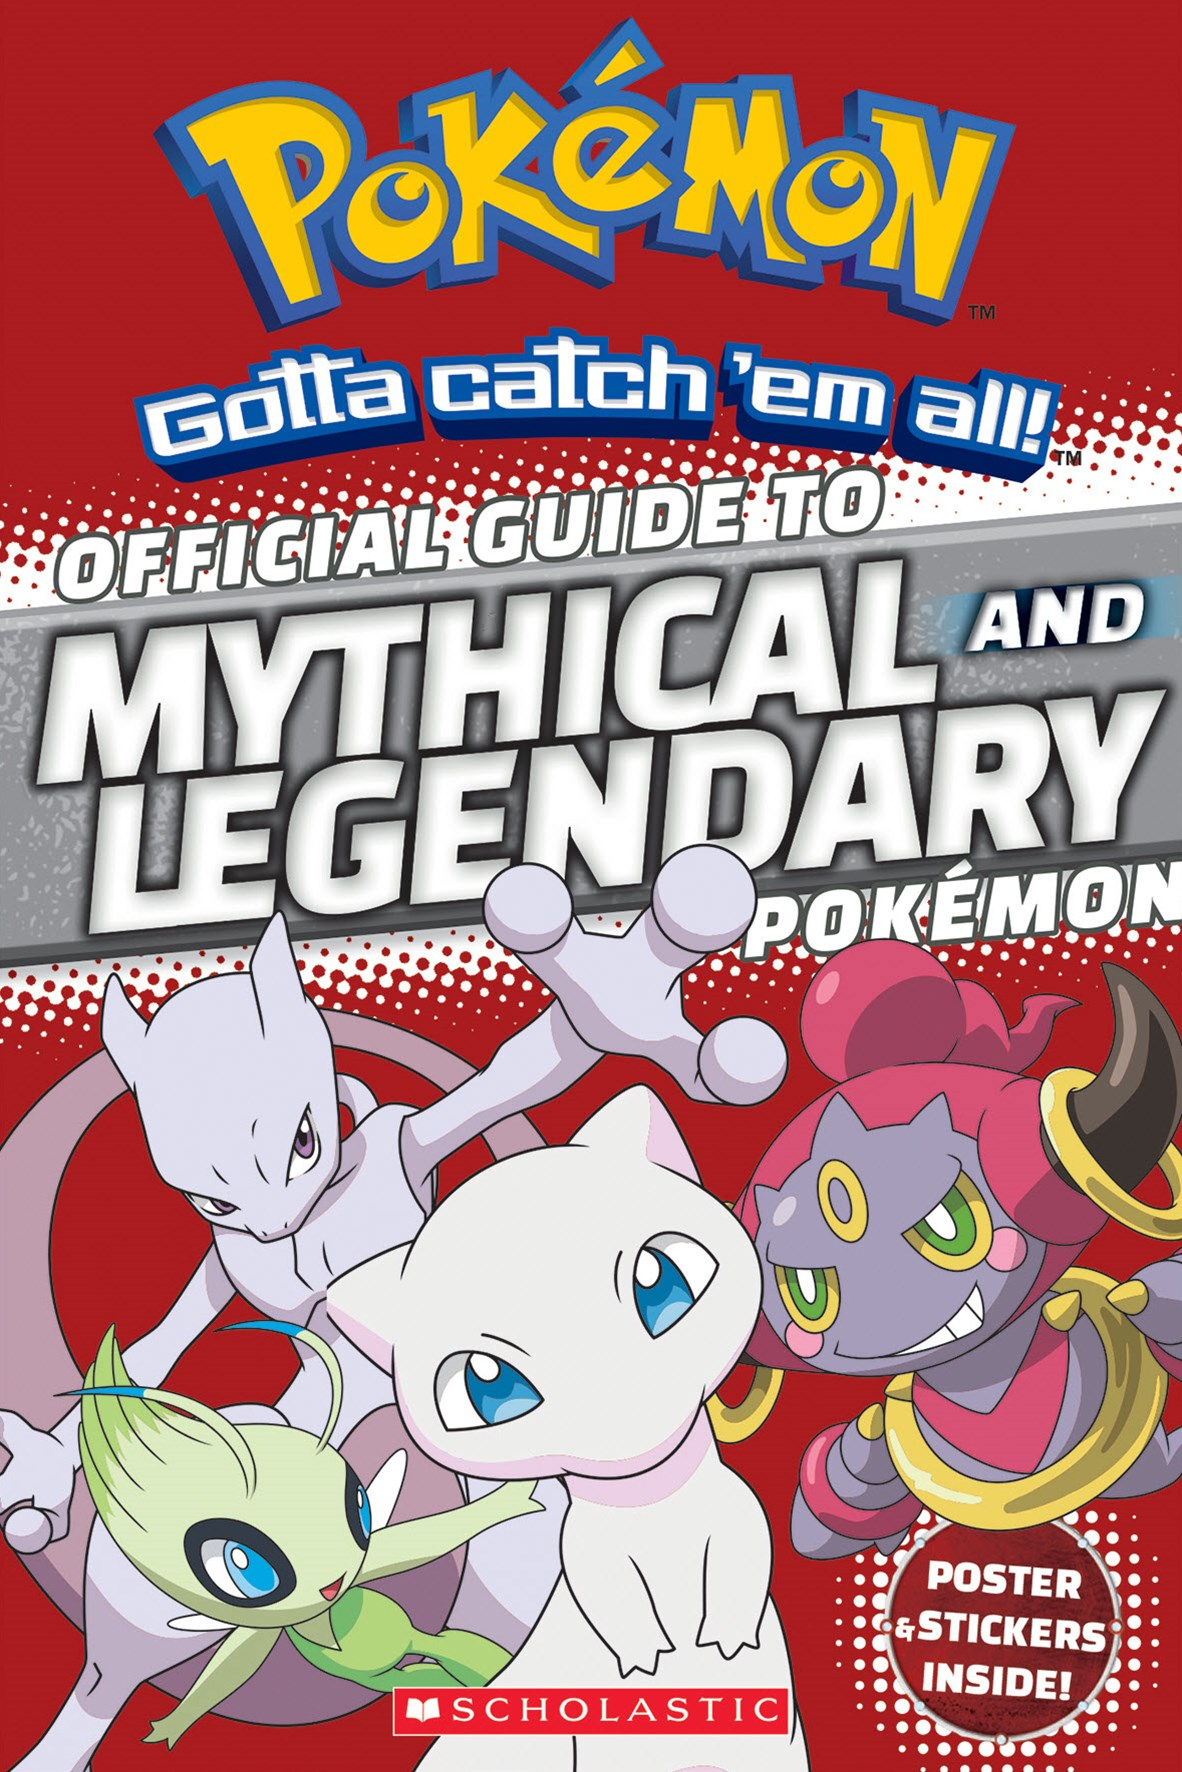 Pokemon: Official guide to Mythical and Legendary Pokemon